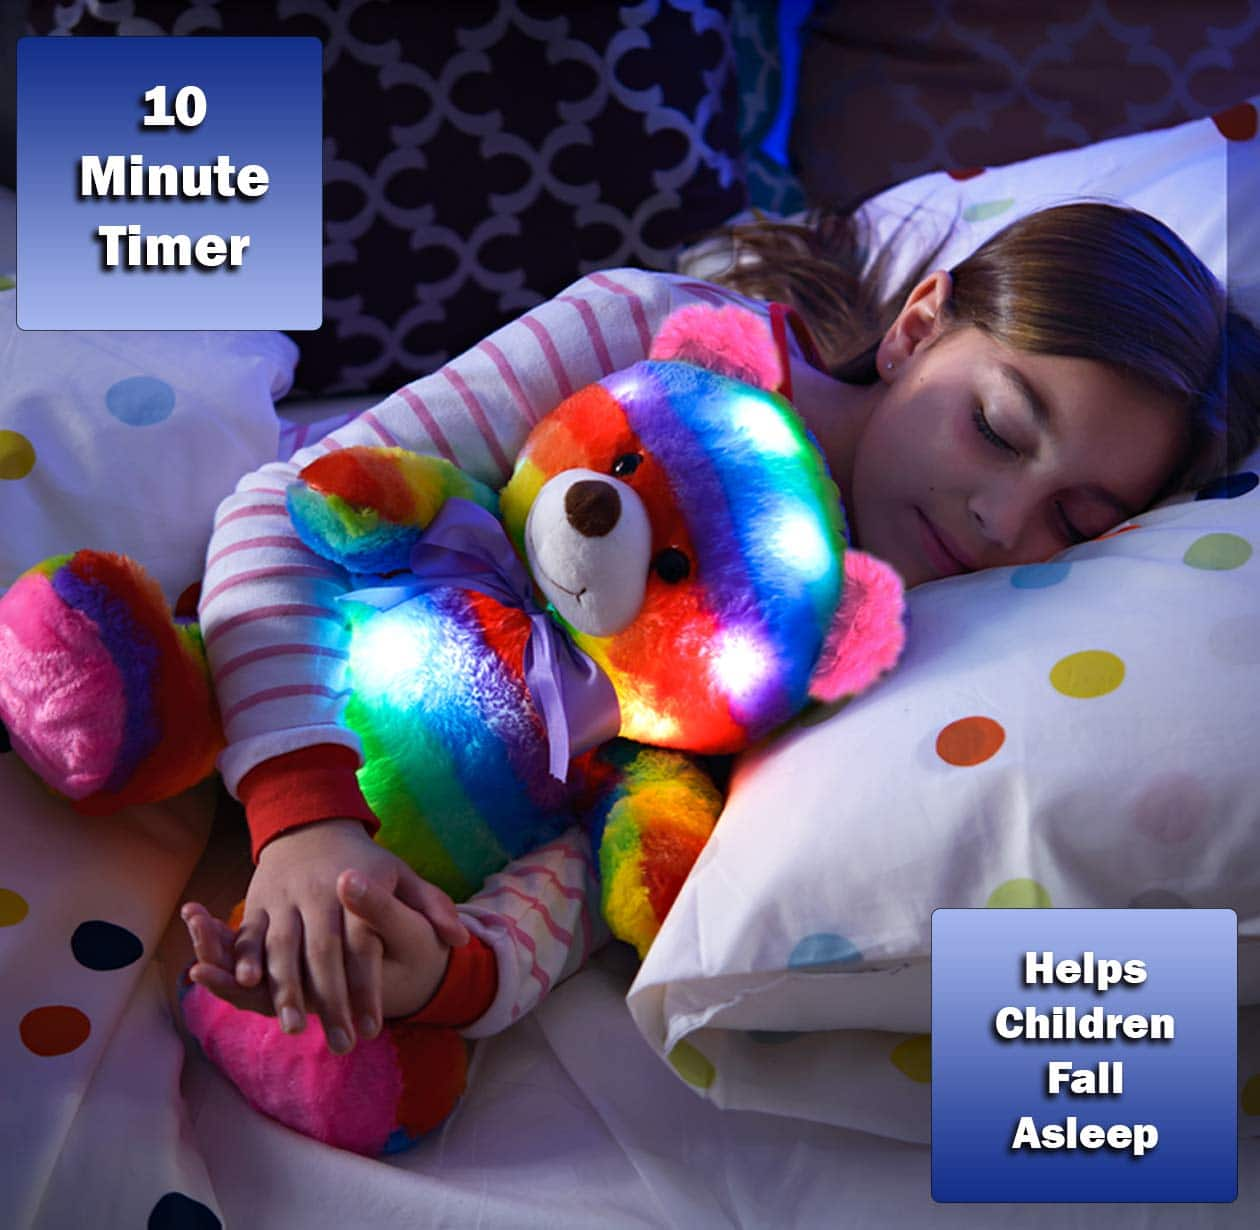 The Noodley LED Stuffed Animal Plush Light Up Toy Bear. Kids love all things that light up! We designed this colorful rainbow teddy bear to come to life with multi colored LED lights that soothe children with fears of the dark. 2020 Valentine's Day Gift Guide from Jays Sweet N Sour Life Blog.